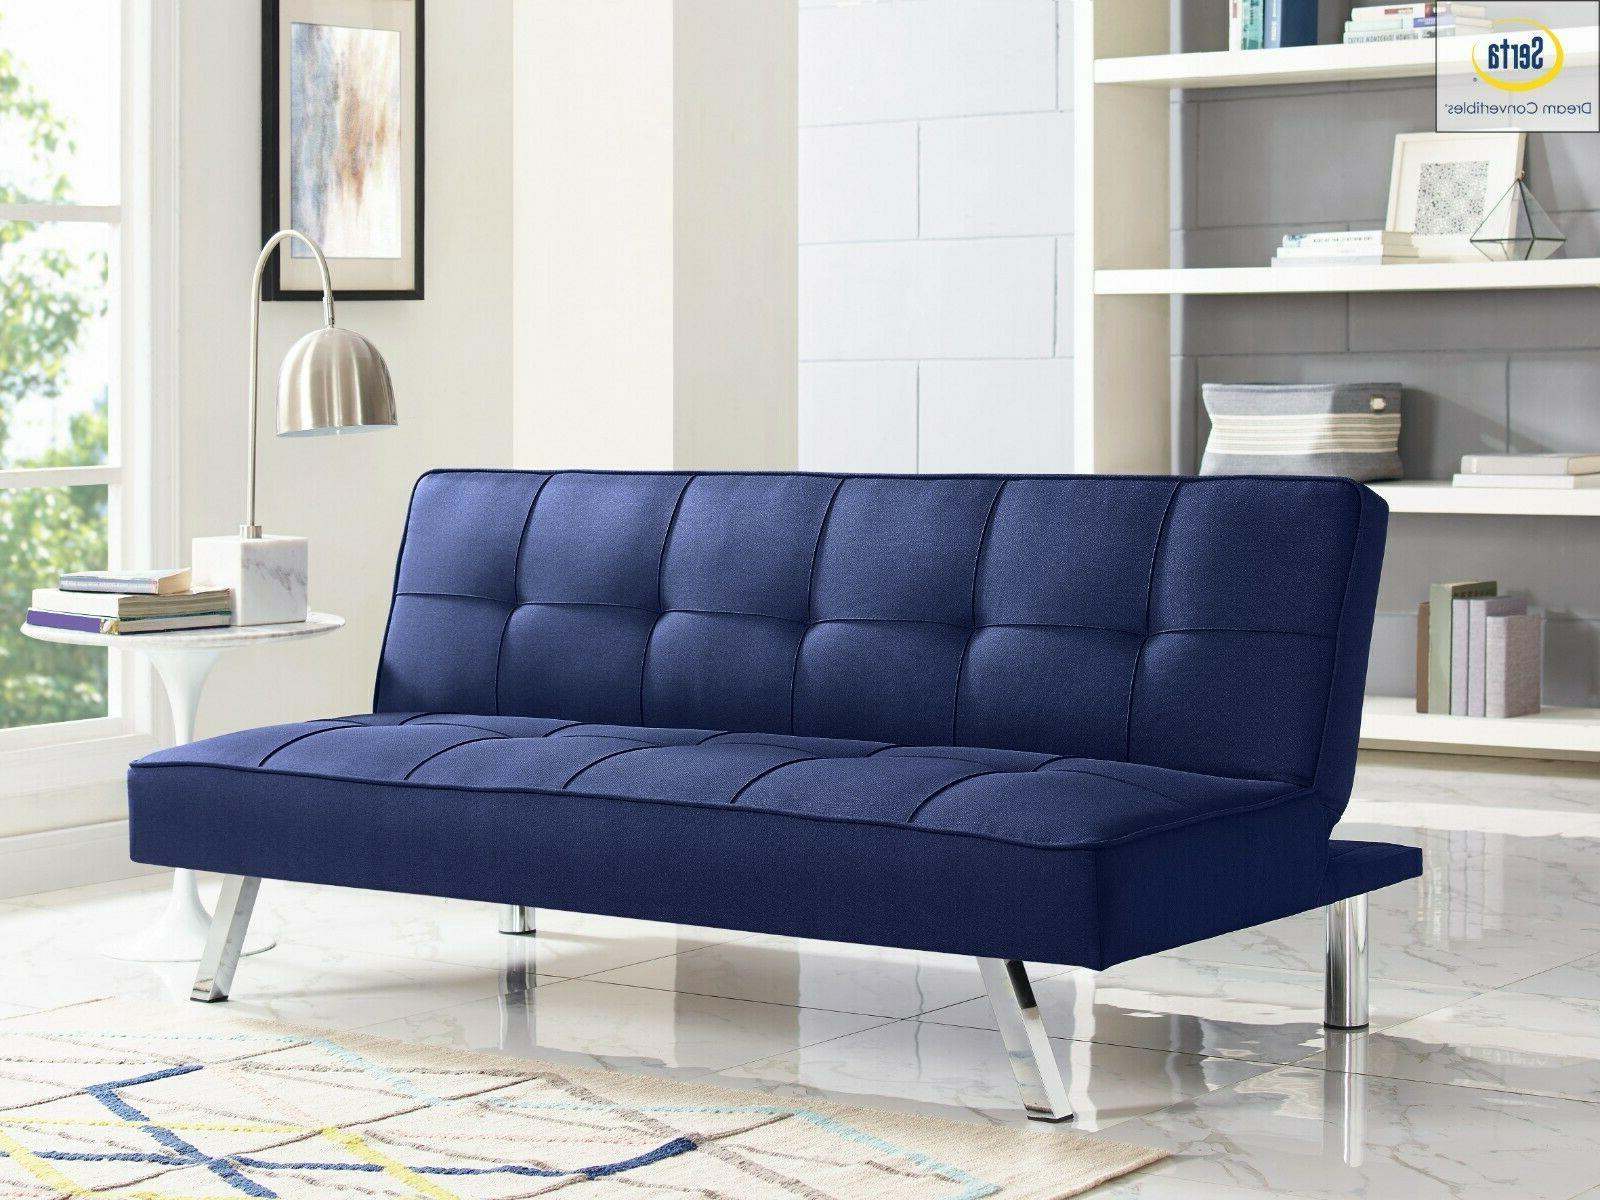 chelsea 3 seat multi function upholstery fabric